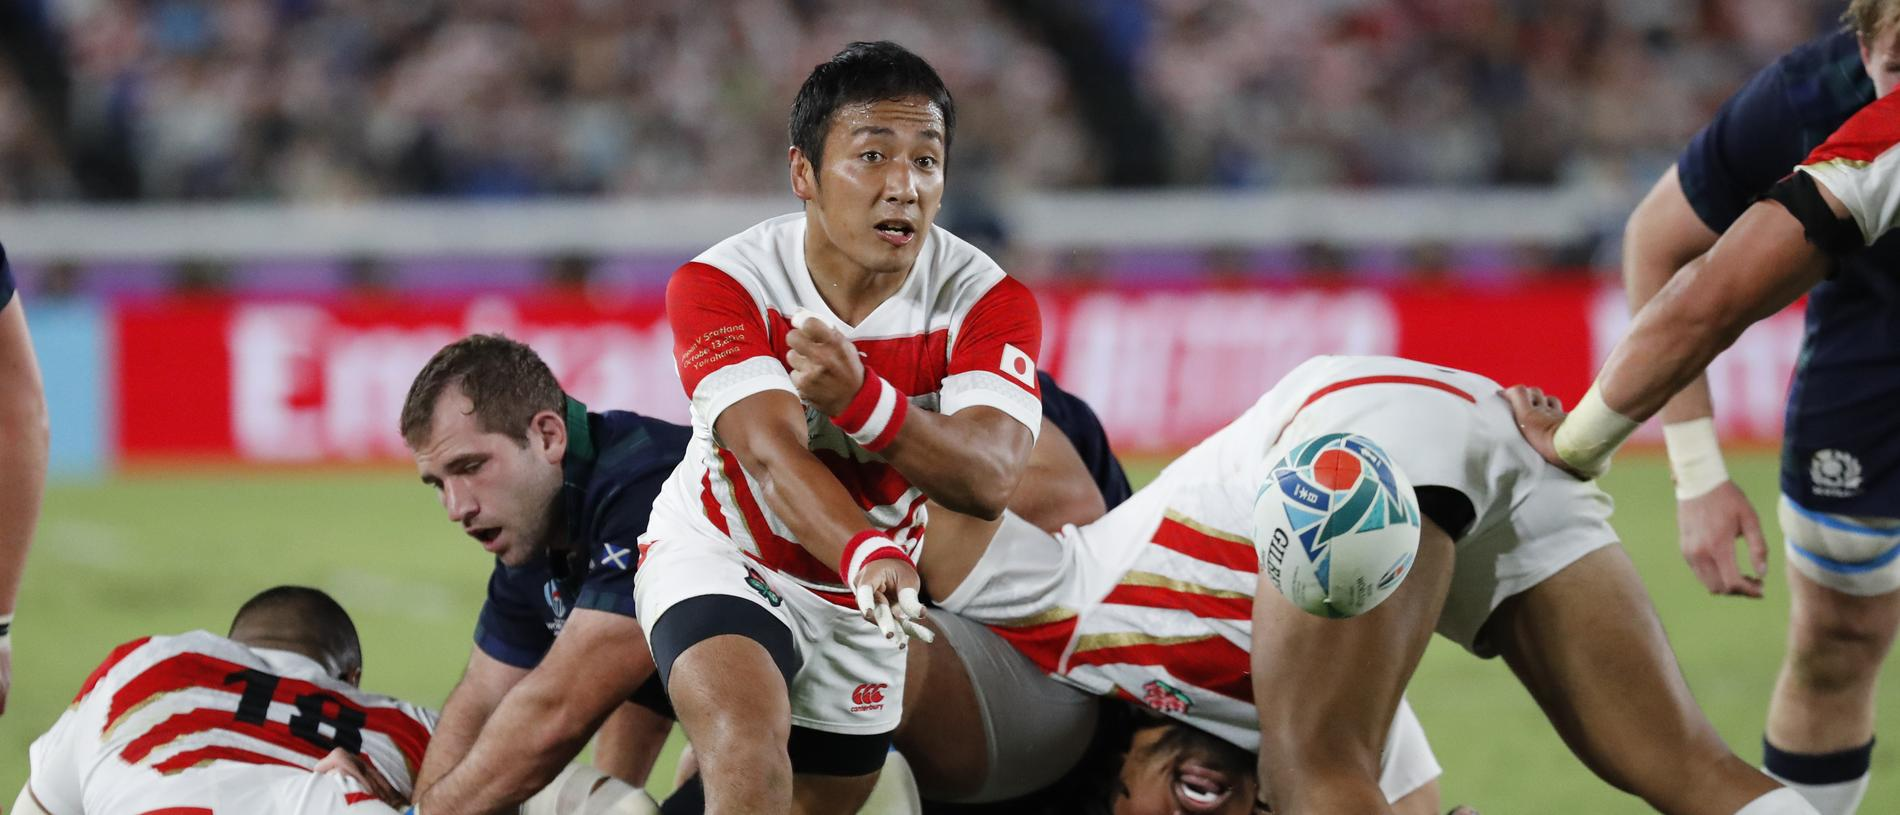 Japan's Yutaka Nagare passes the ball during the Rugby World Cup Pool A game at International Stadium between Japan and Scotland in Yokohama, Japan, Sunday, Oct. 13, 2019. (AP Photo/Eugene Hoshiko)